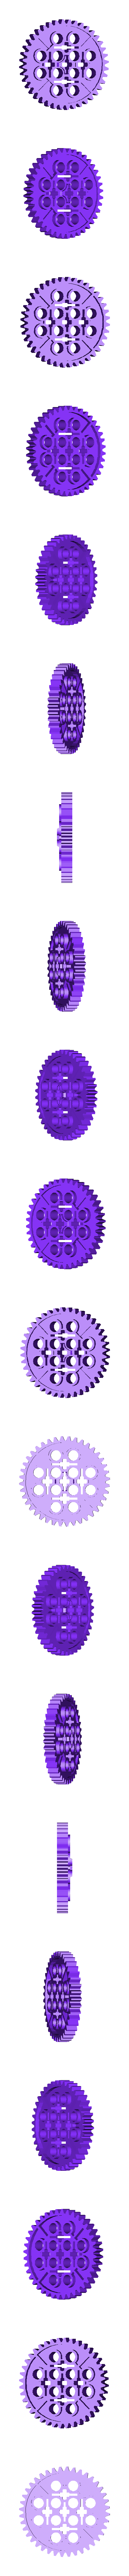 bbStock40TGear.stl Download free STL file Common Gear set • 3D printer object, Lassaalk